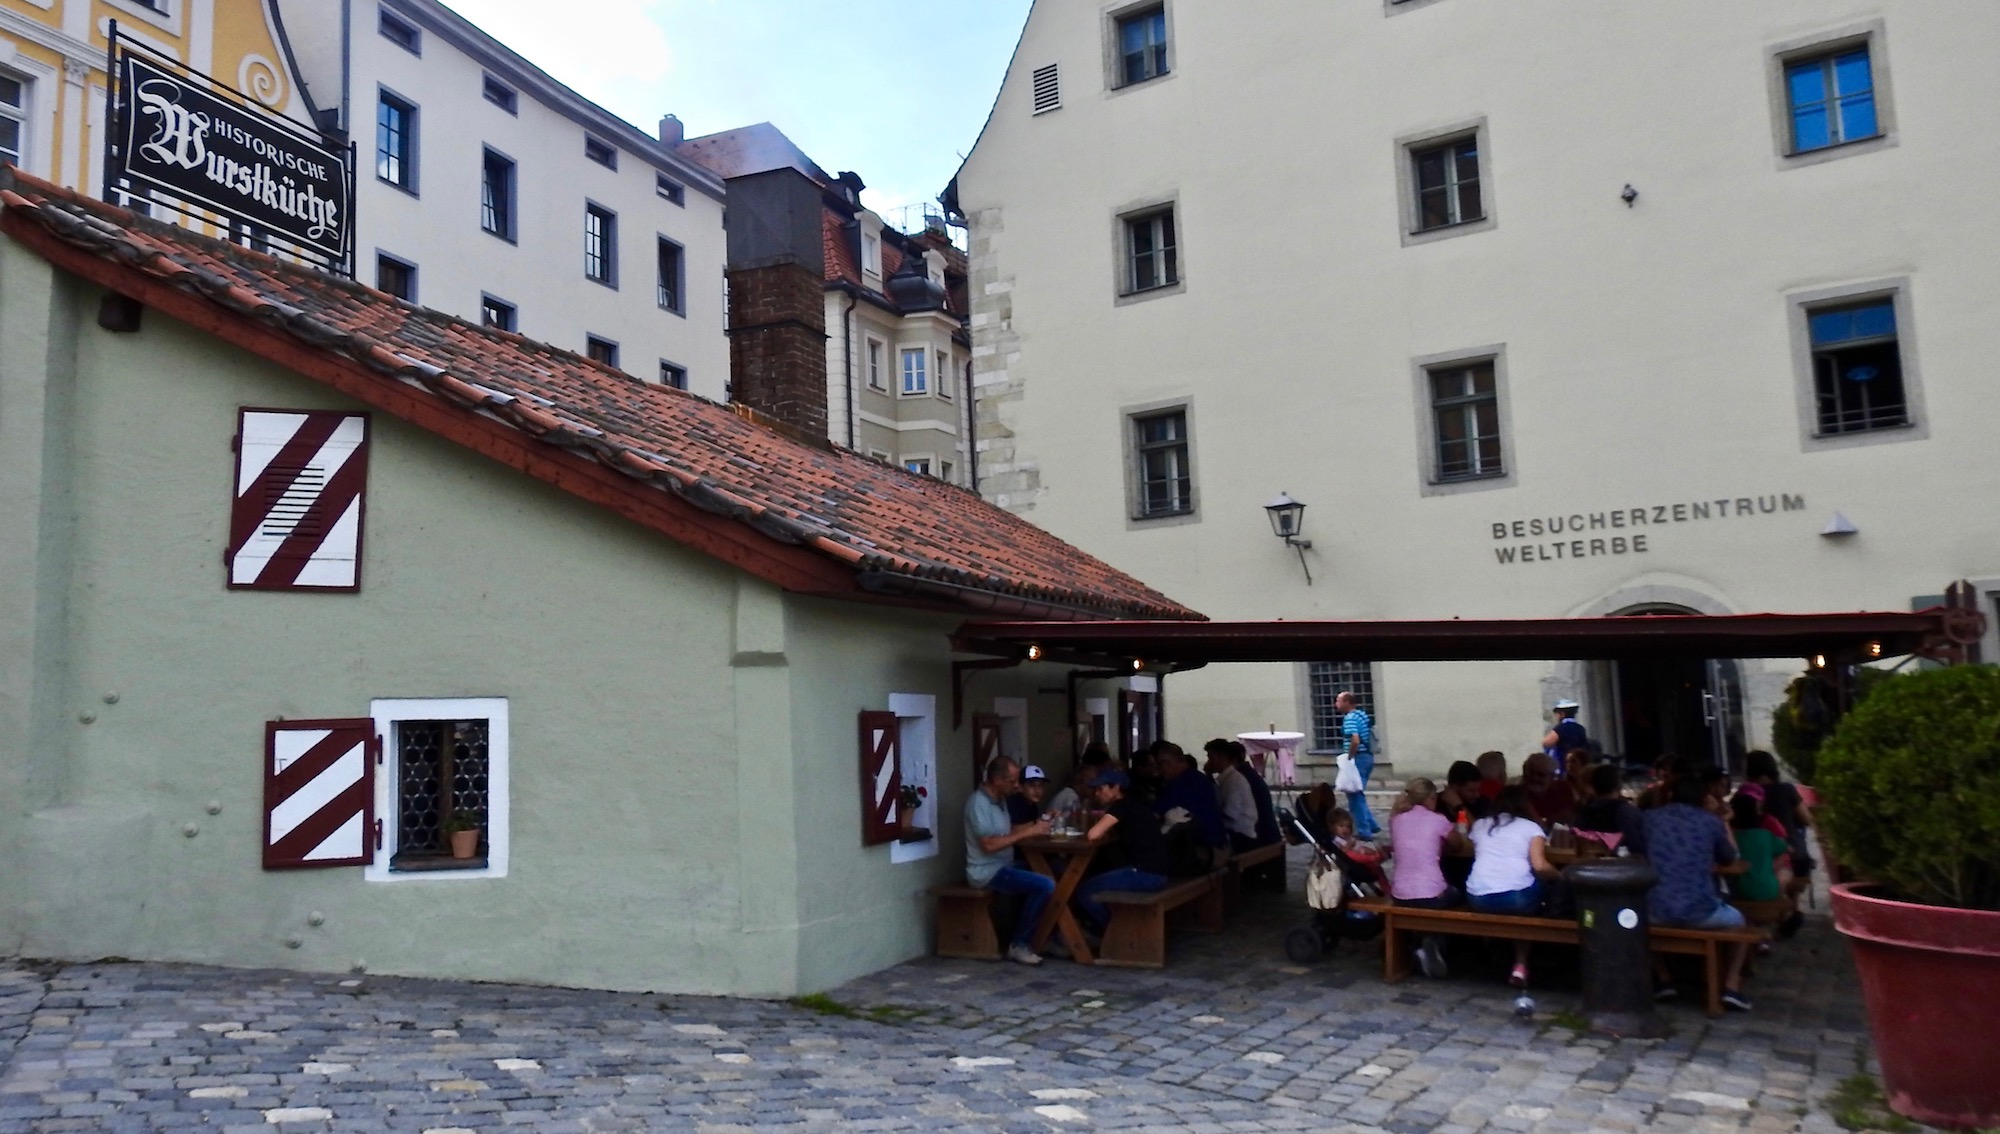 The Burstkuche, historical sausage cafe near the Danube.